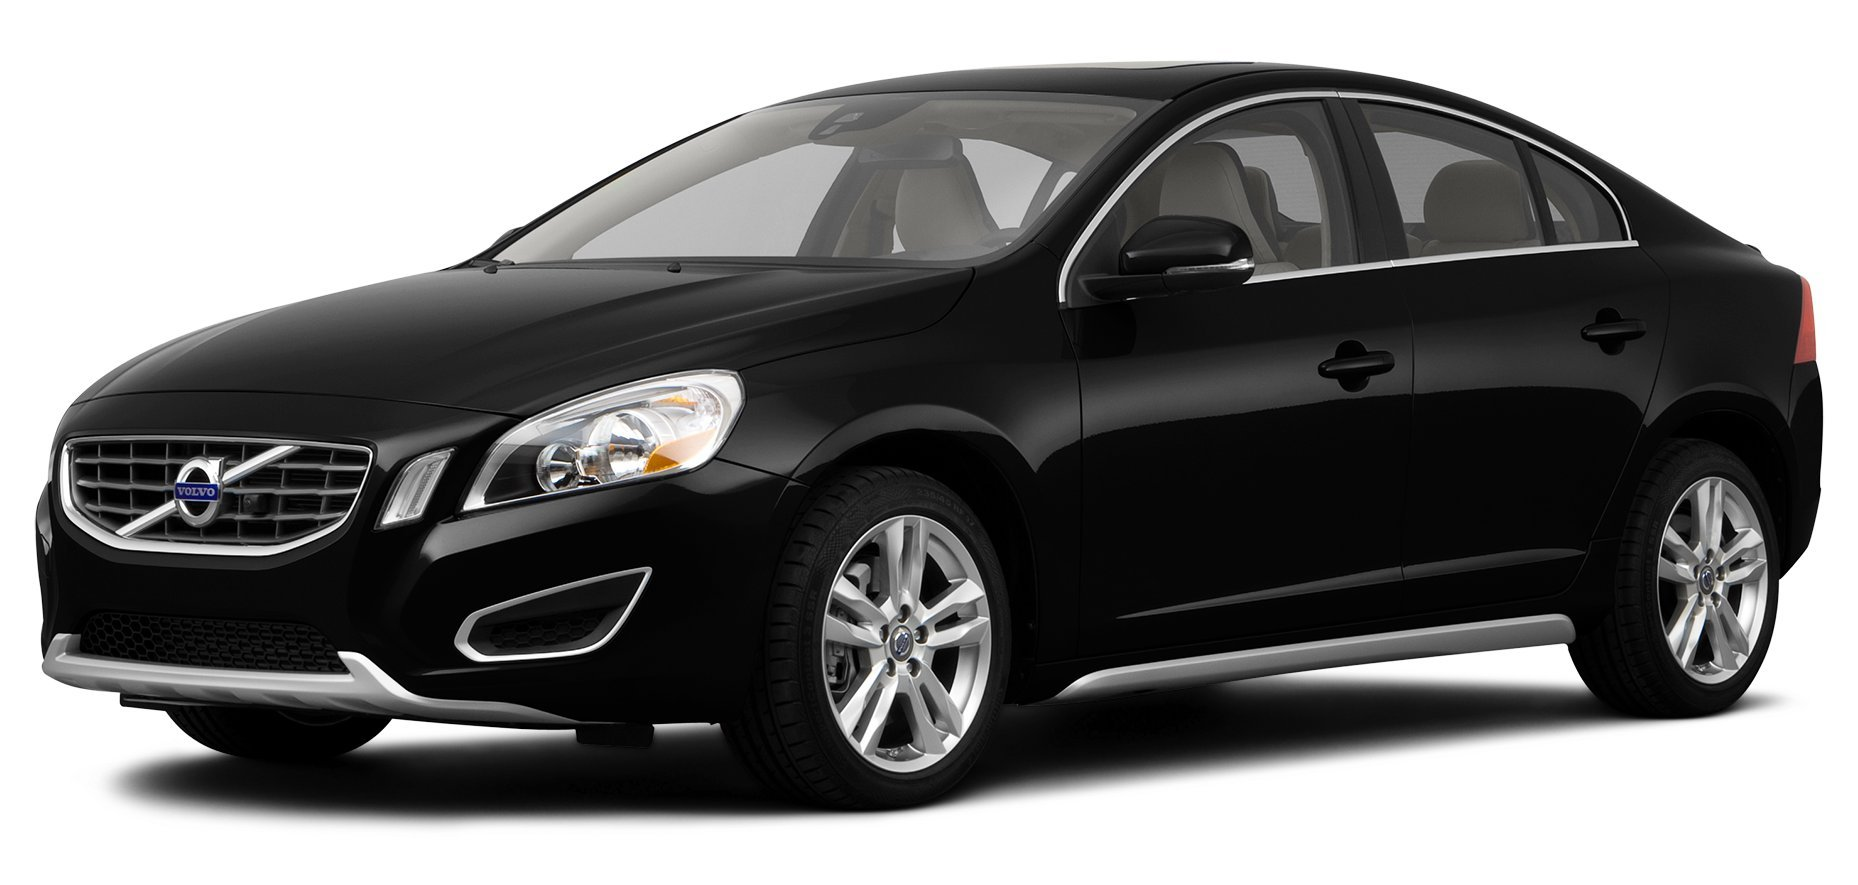 2012 volvo s60 reviews images and specs vehicles. Black Bedroom Furniture Sets. Home Design Ideas